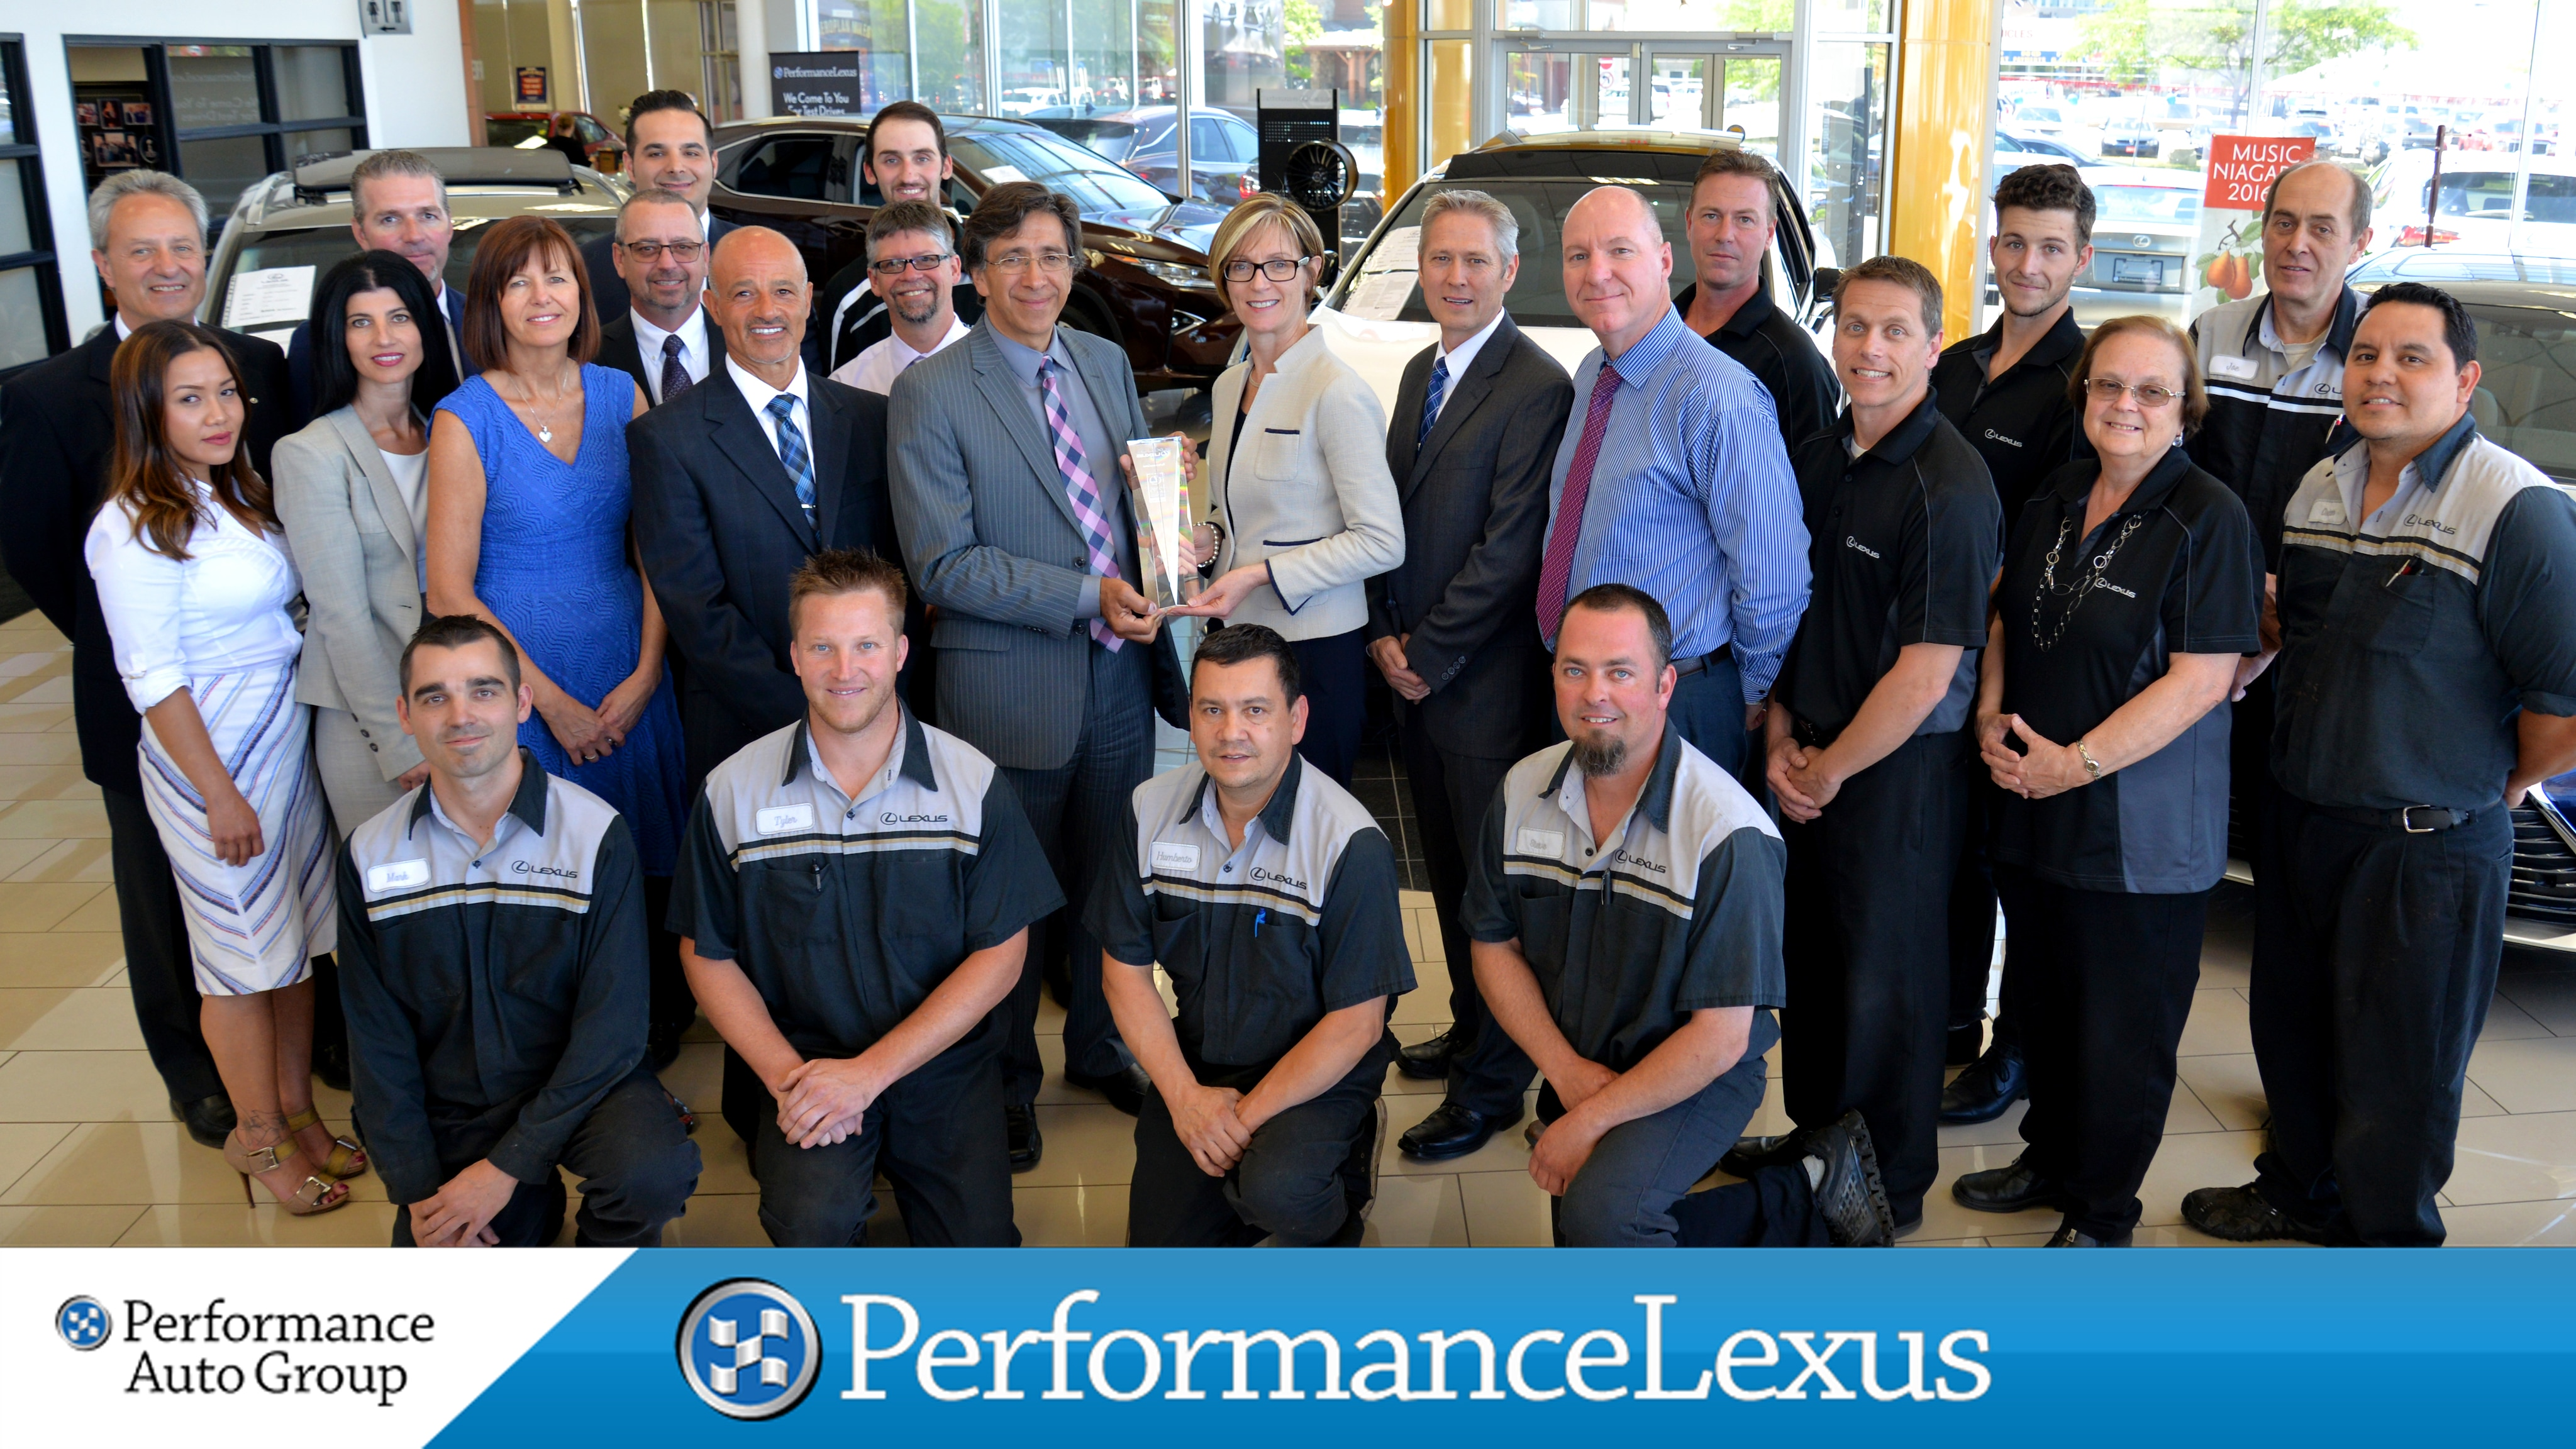 Performance Lexus Staff